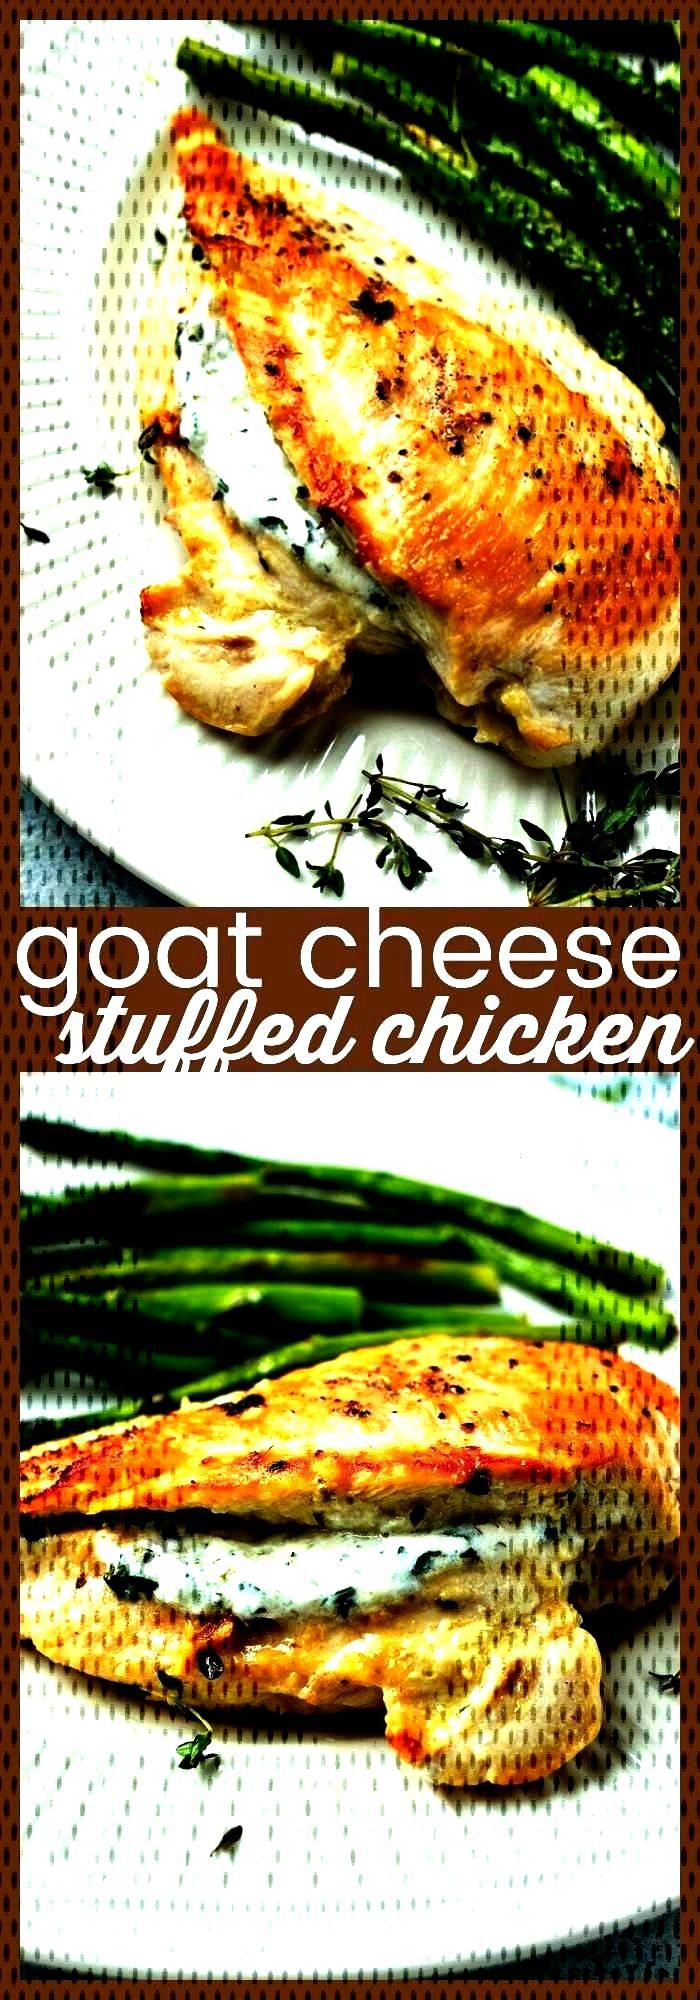 Cheese Stuffed Chicken Goat Cheese Stuffed Chicken – Chicken breasts are stuffed with a garlic he